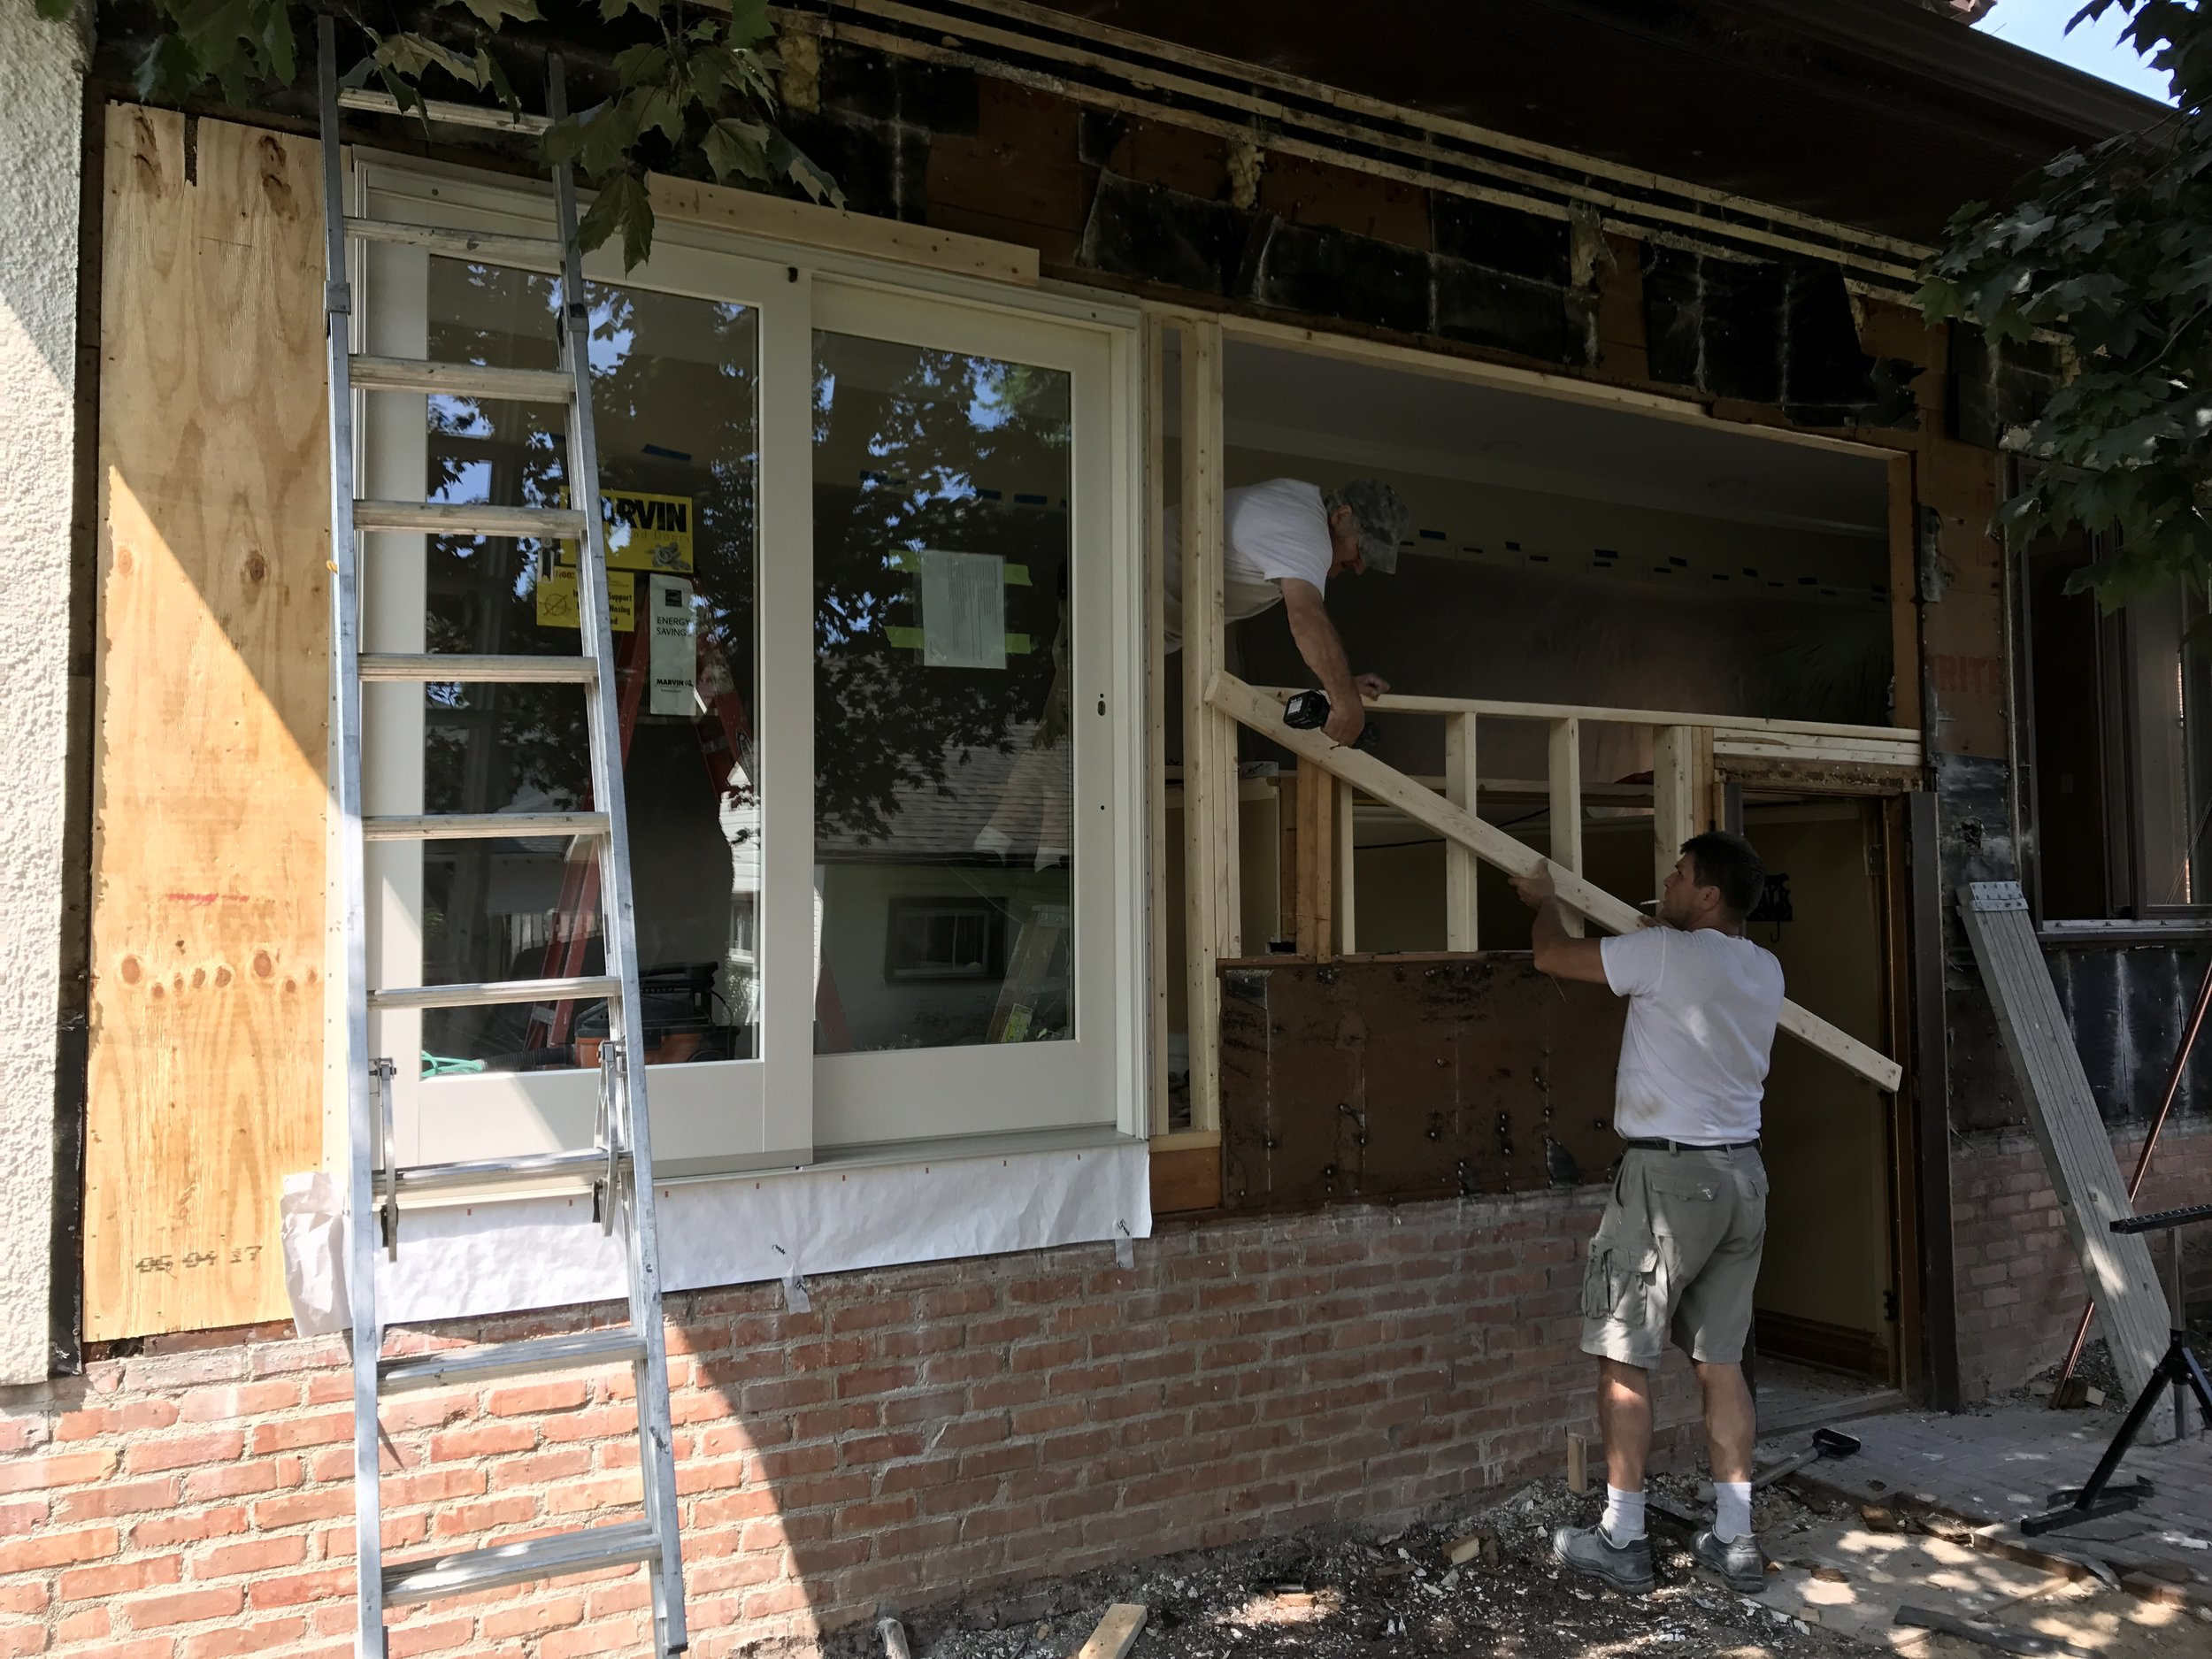 In order to access the deck from the kitchen, we removed a bank of windows and installed a sliding door.